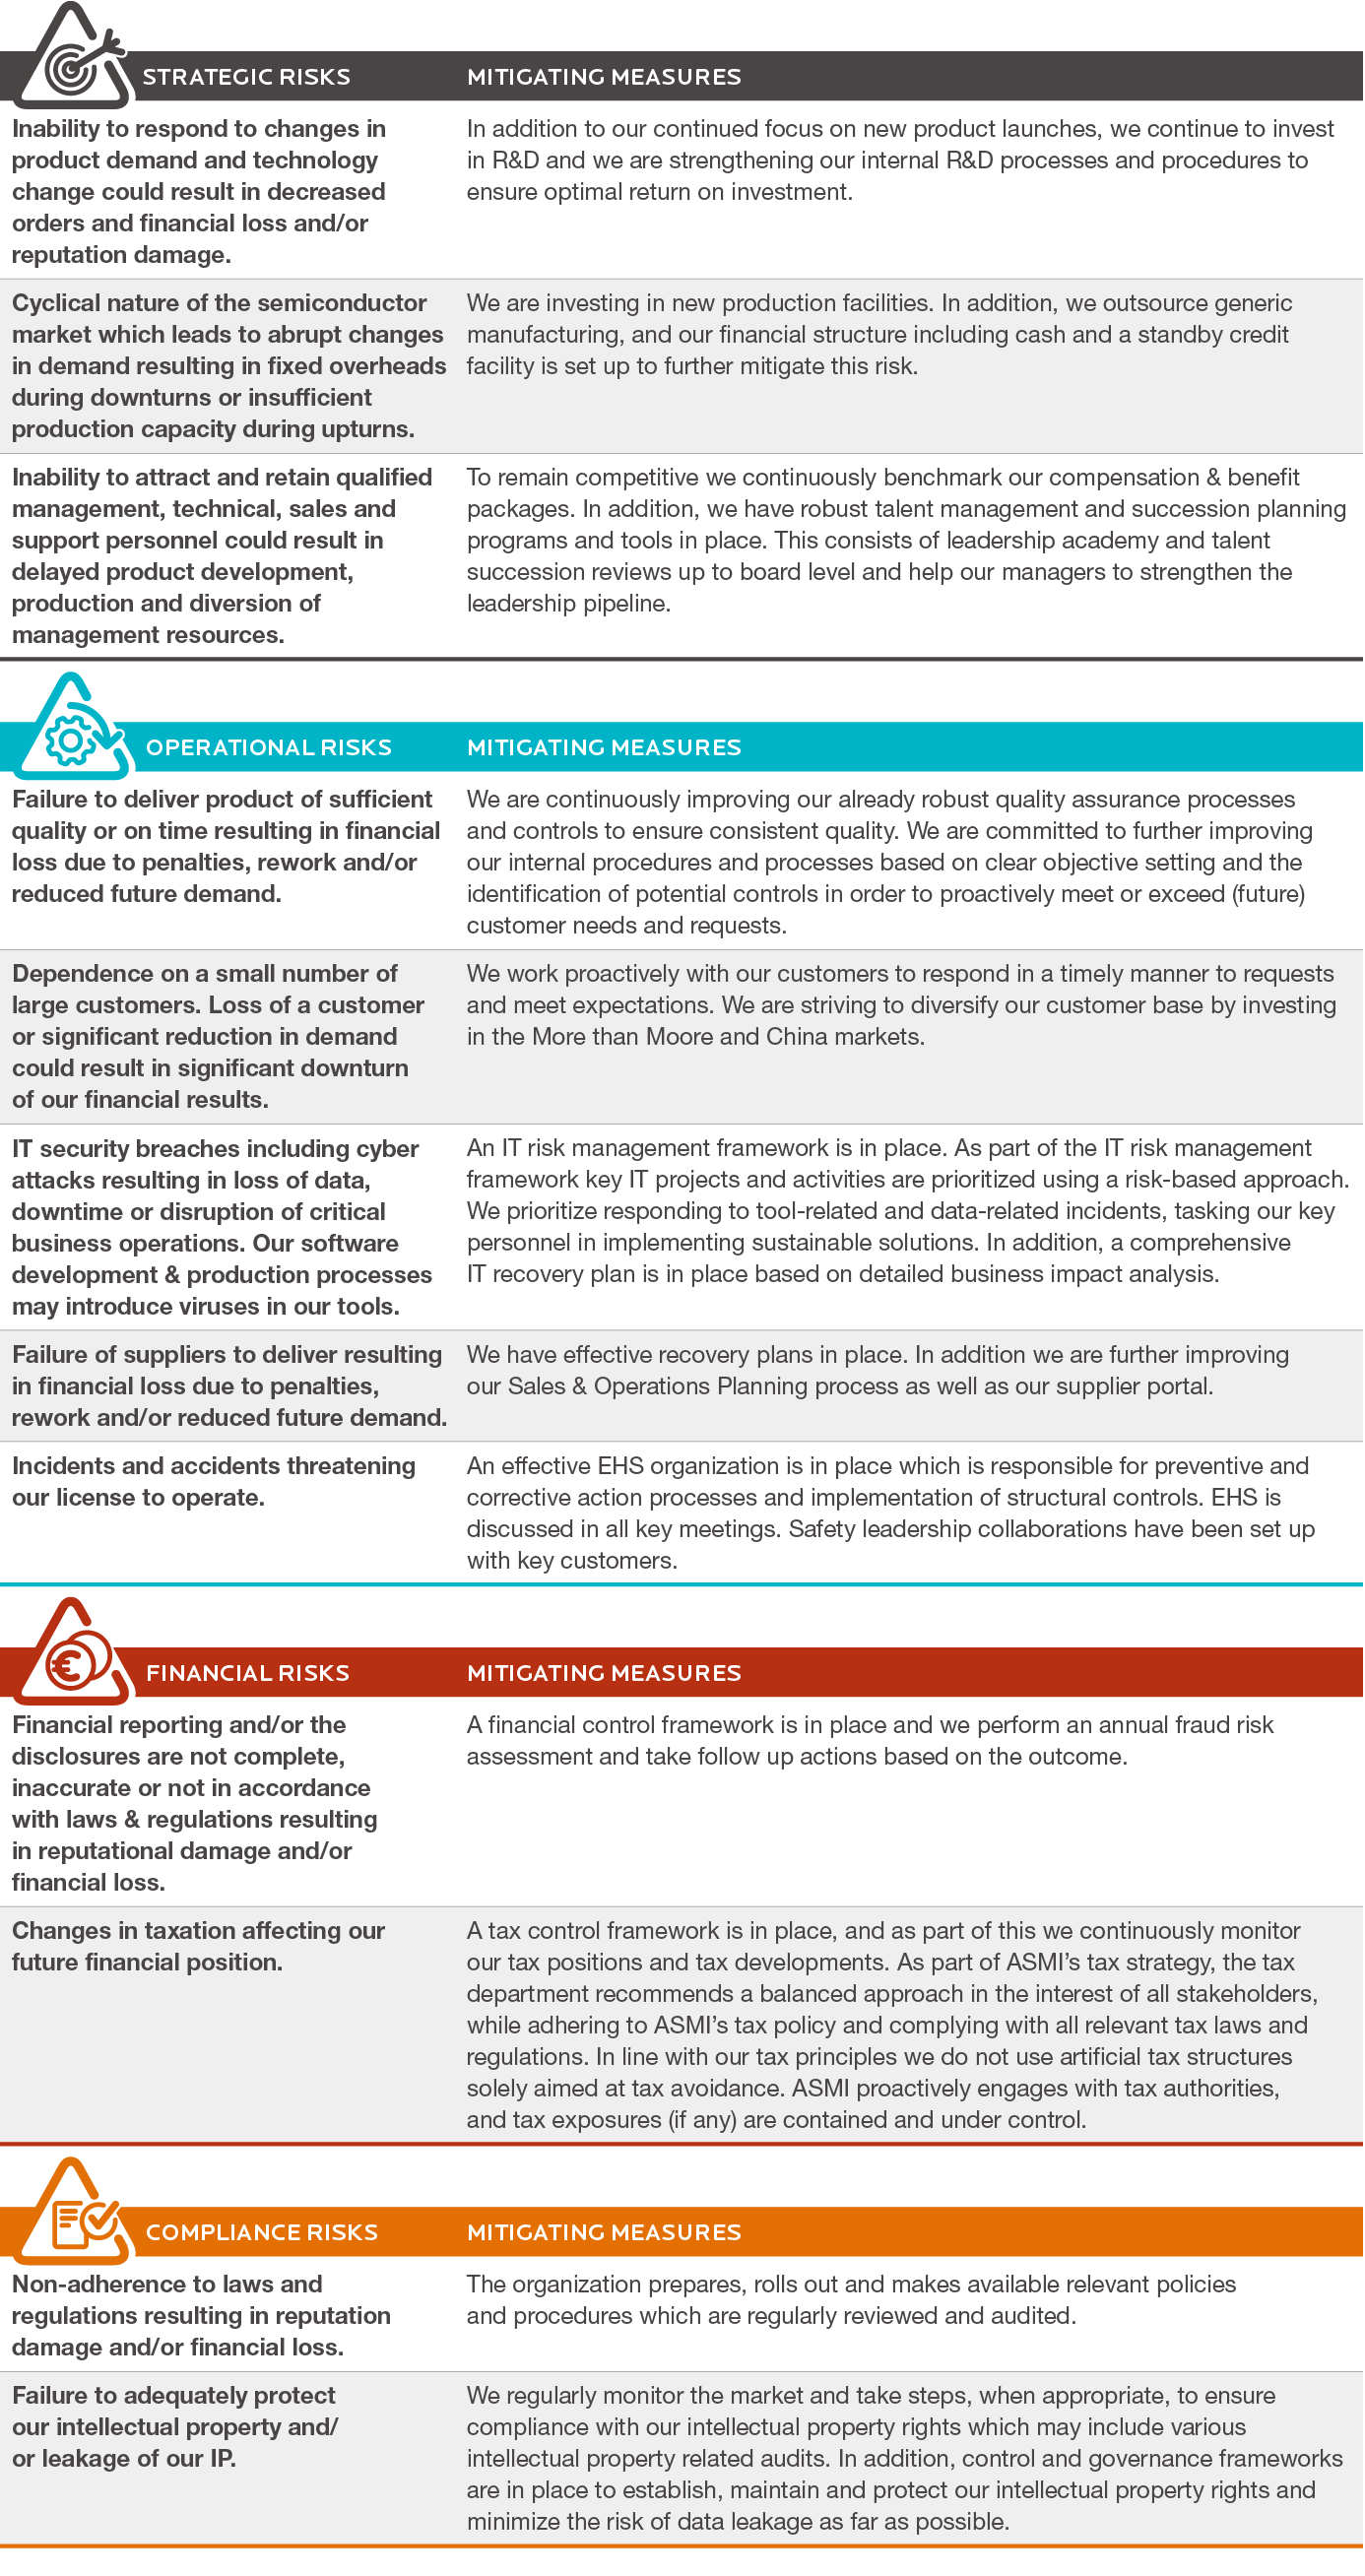 Risk categories and factors - Annual report ASM International